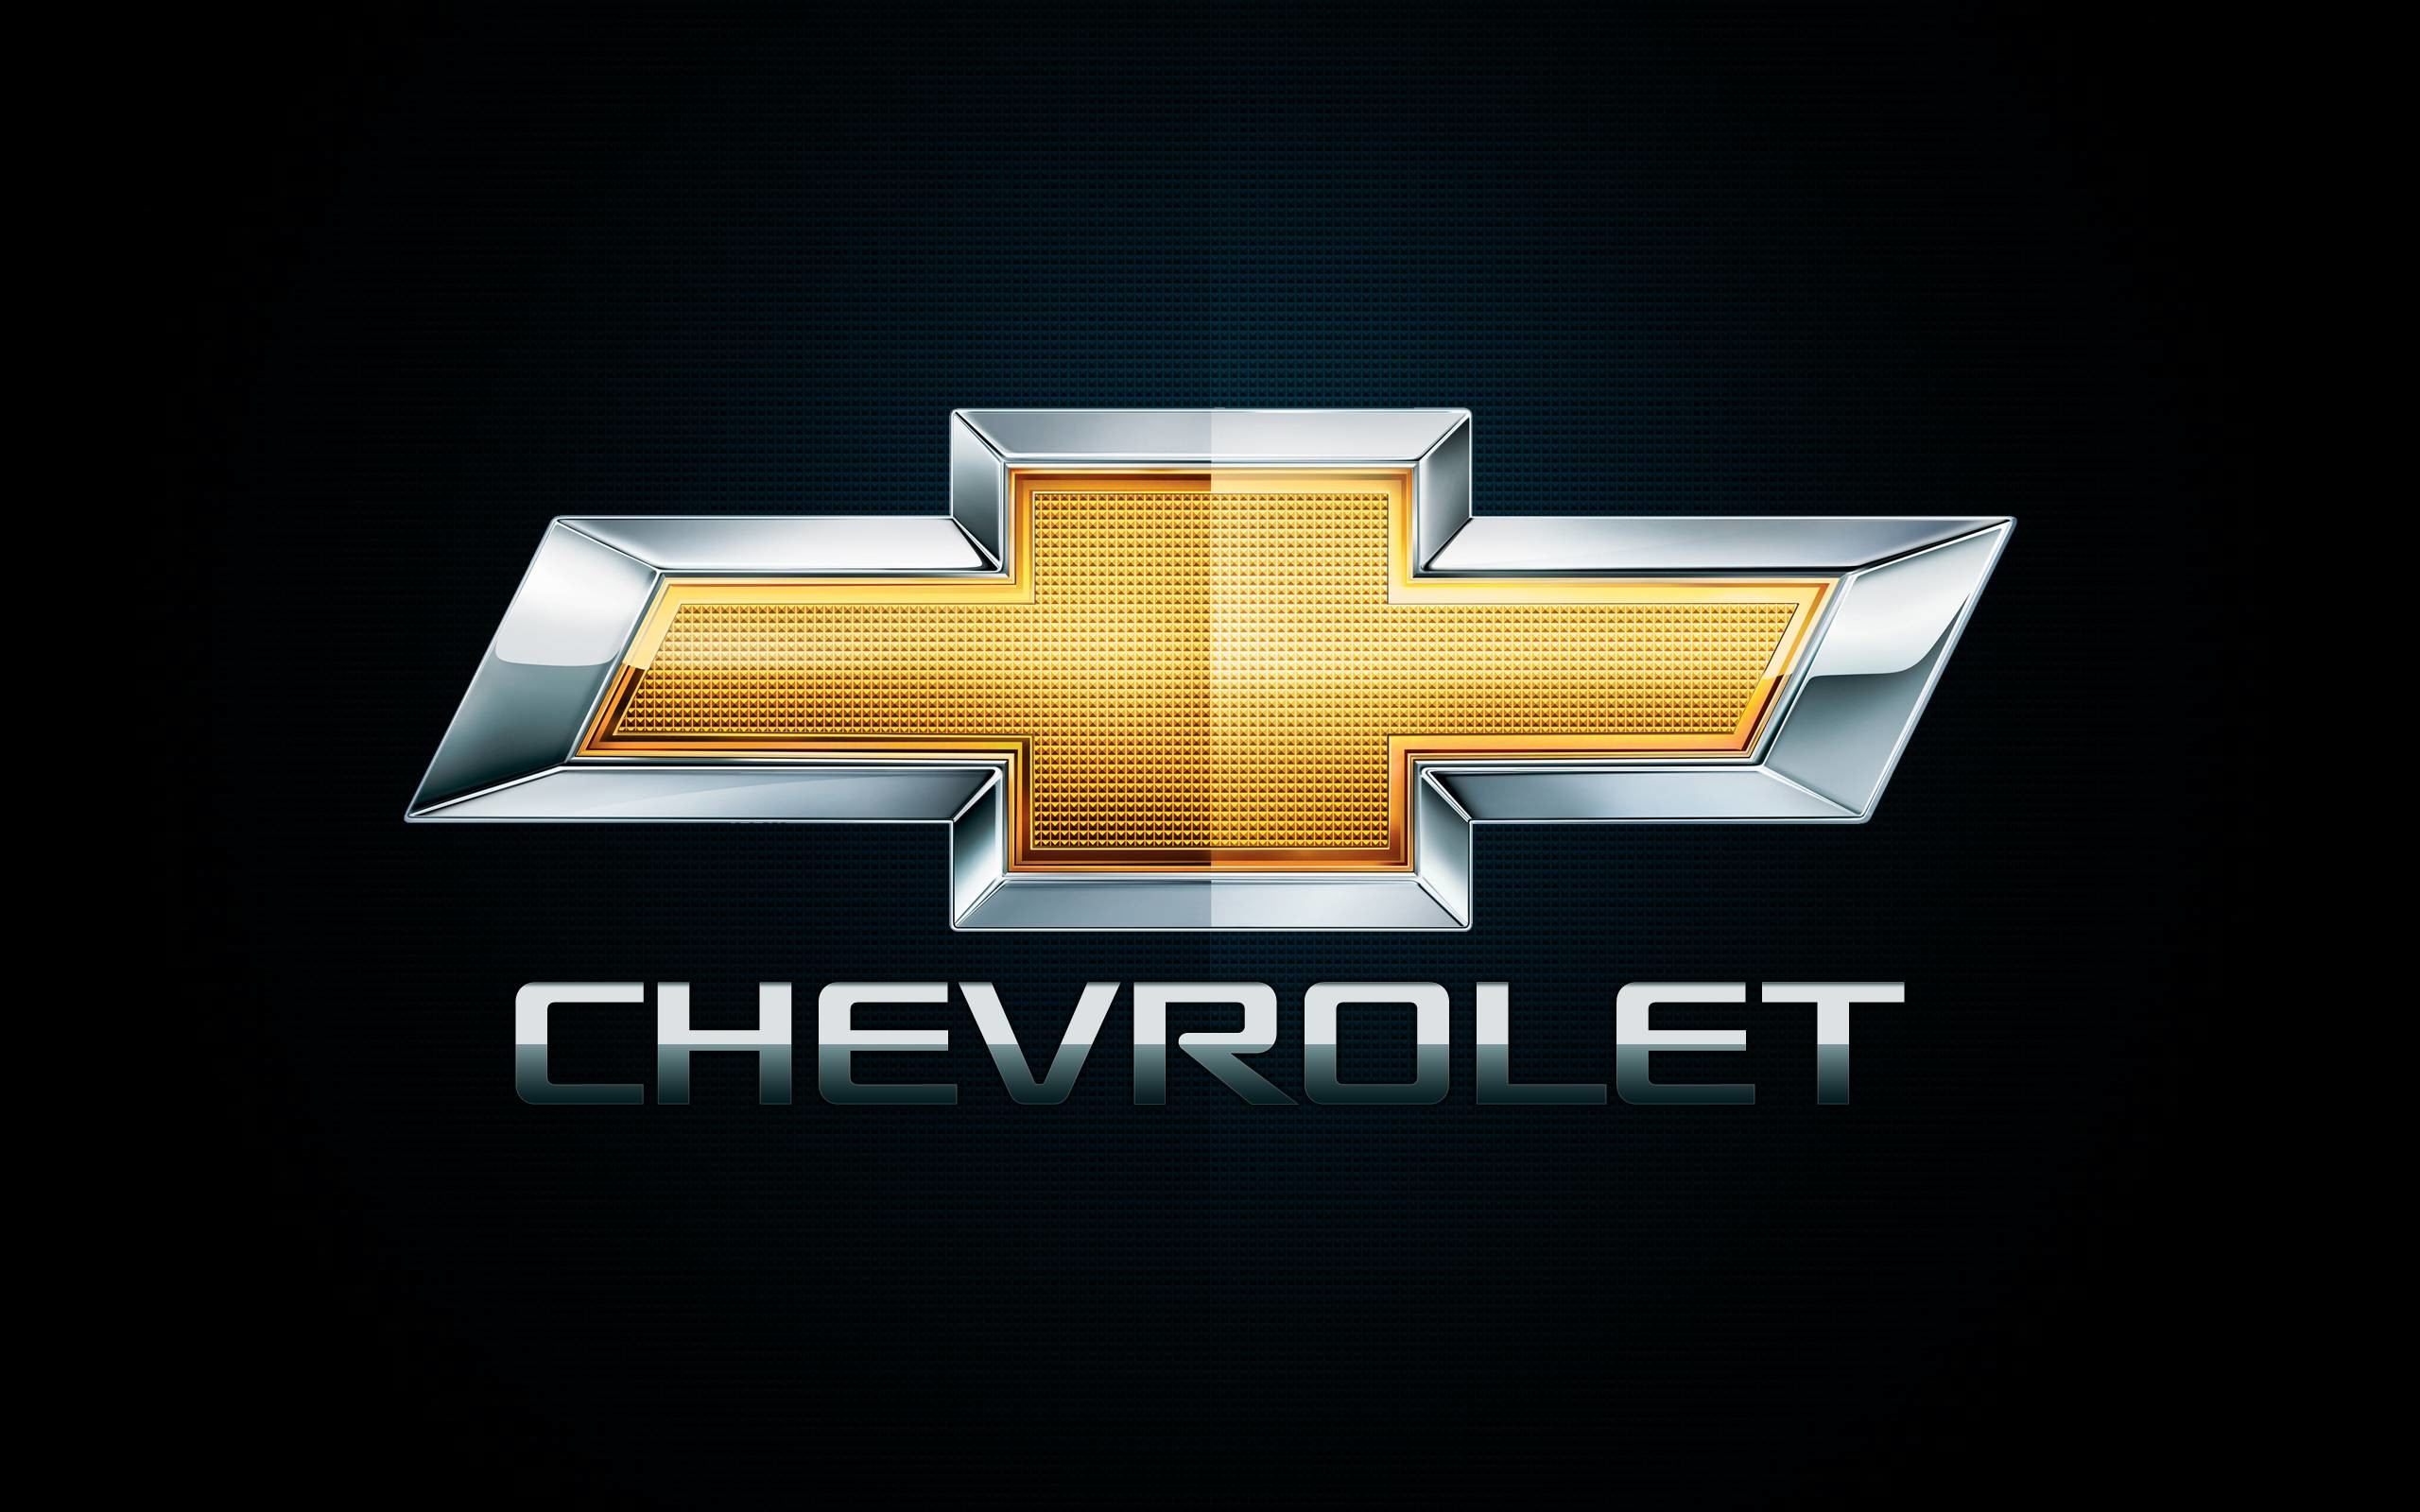 Chevrolet Logo Wallpapers – Full HD wallpaper search